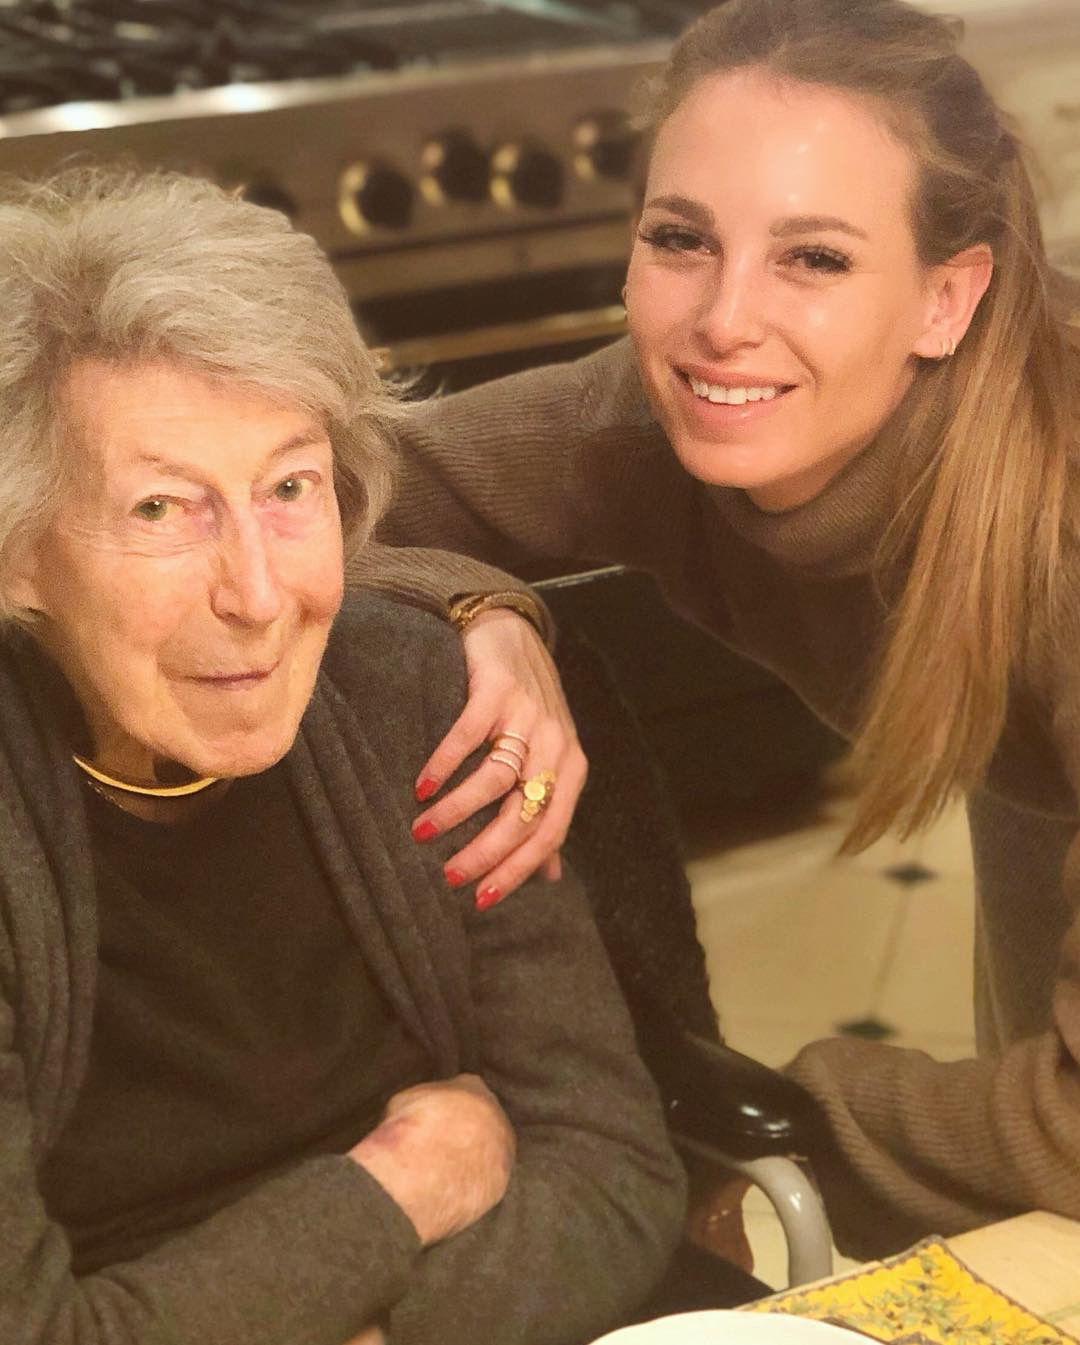 Eating with my Grandma in December, in her kitchen in New York.